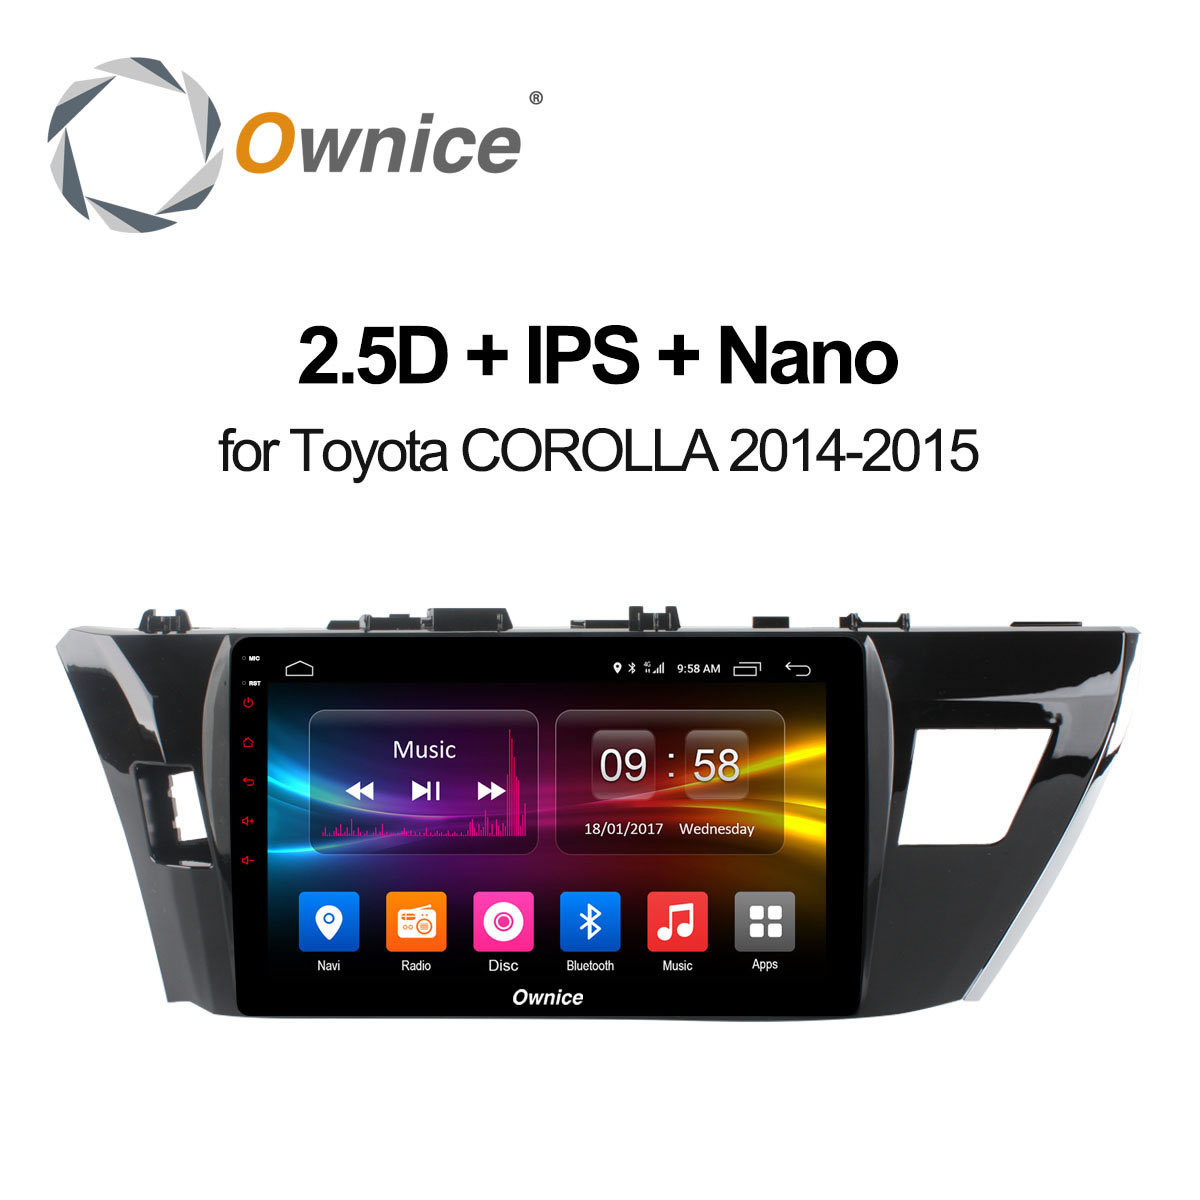 ownice-c500-10fontb2-b-font-octa-core-car-radio-dvd-player-fontb2-b-font-din-gps-android-6fontb0-b-f